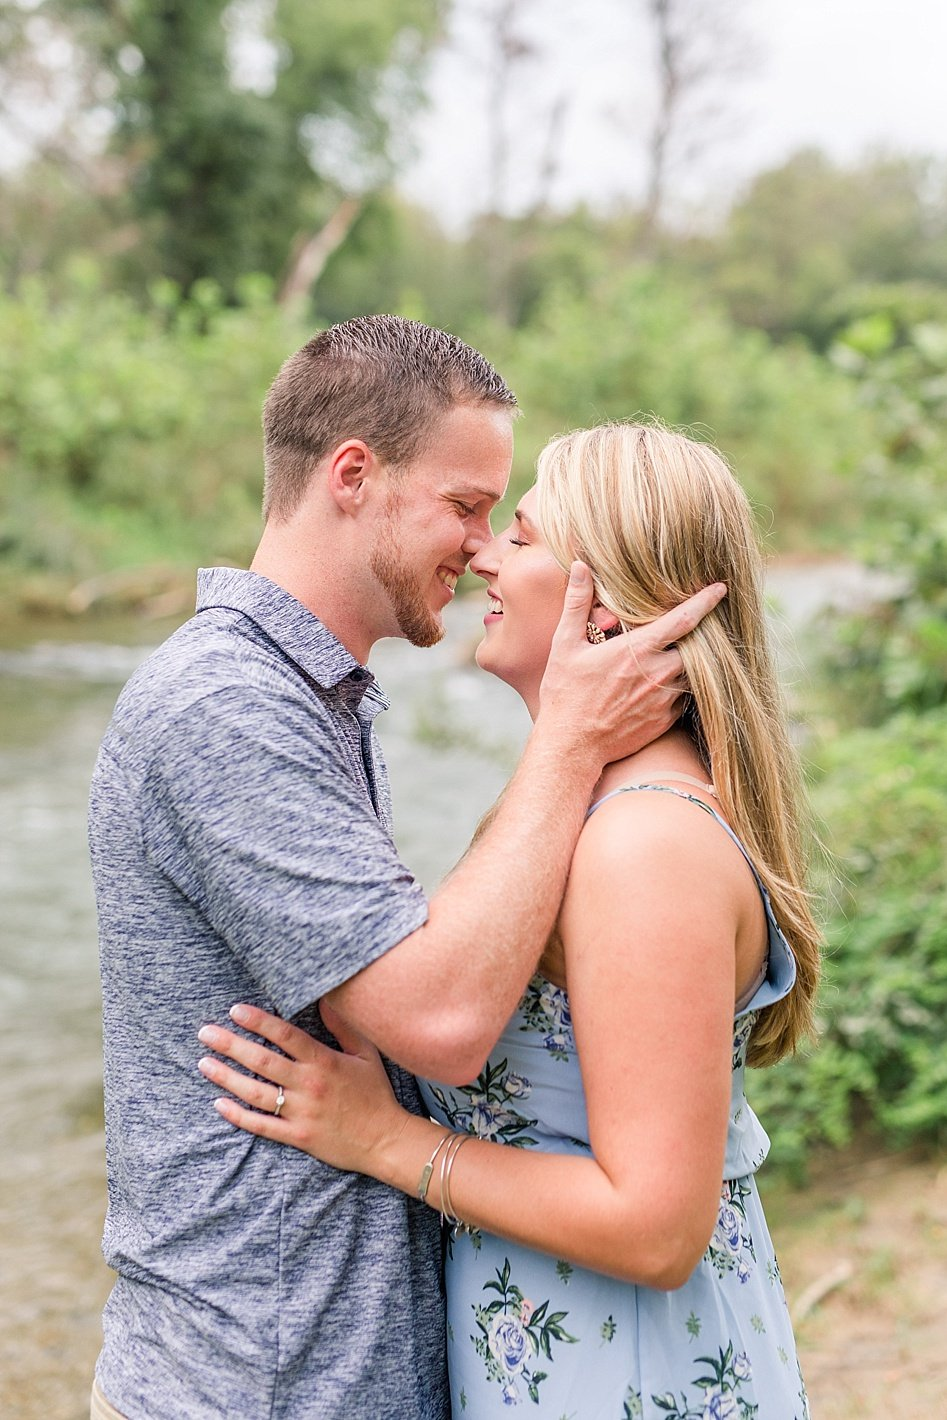 NCR trail engagement photography, Baltimore engagement photographer, coordinating blue outfits for engagement photos, engagement posing